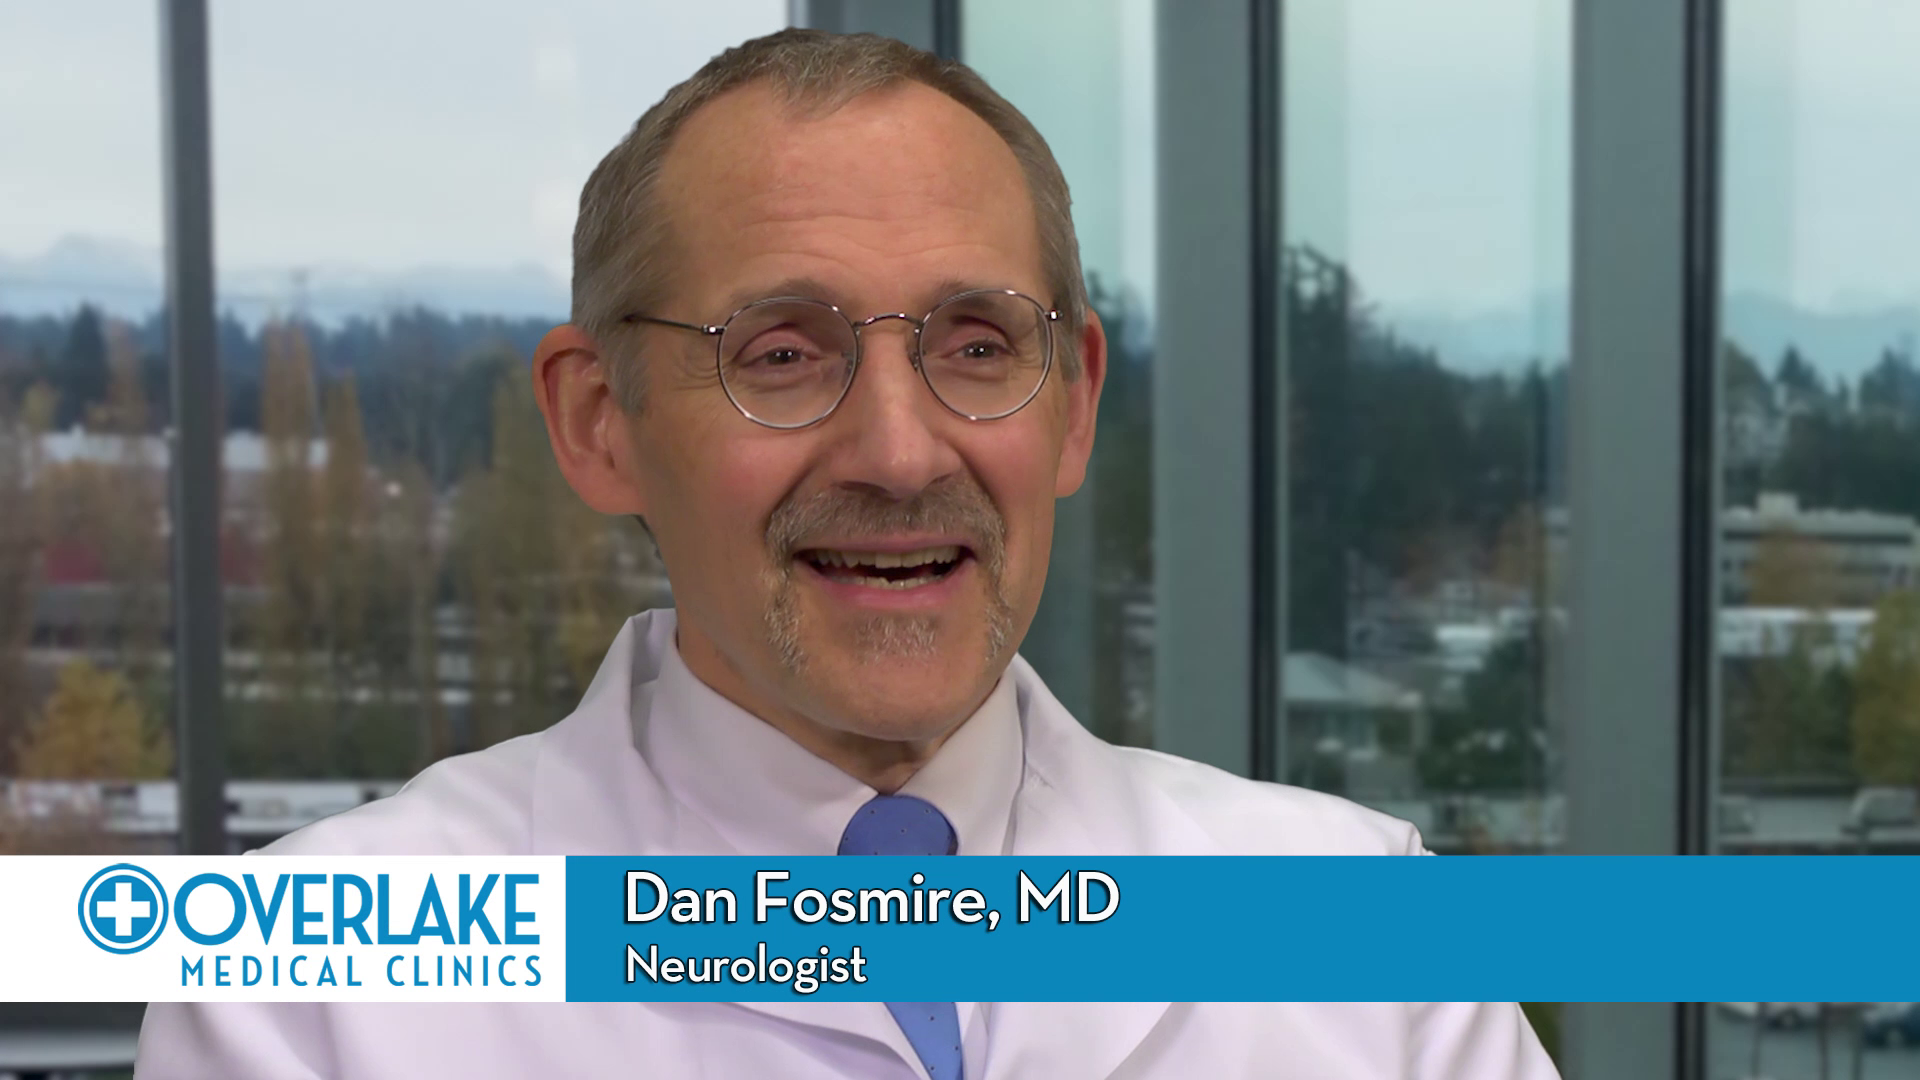 Dr. Fosmire talks about his practice